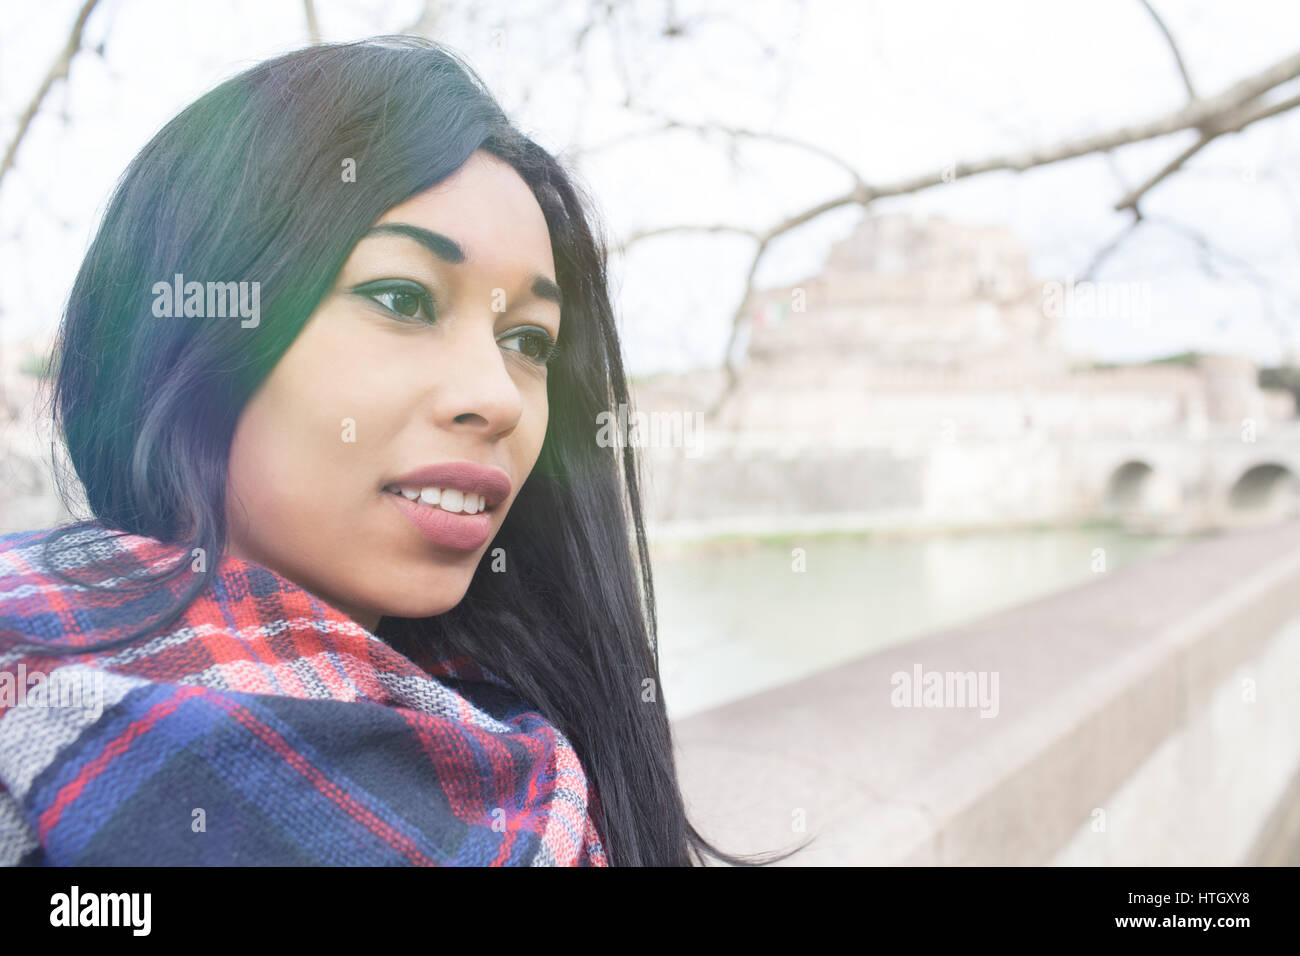 Young beautiful mixed race woman with melancholic expression, looking over, in Rome, Italy with Sant Angelo Castle - Stock Image